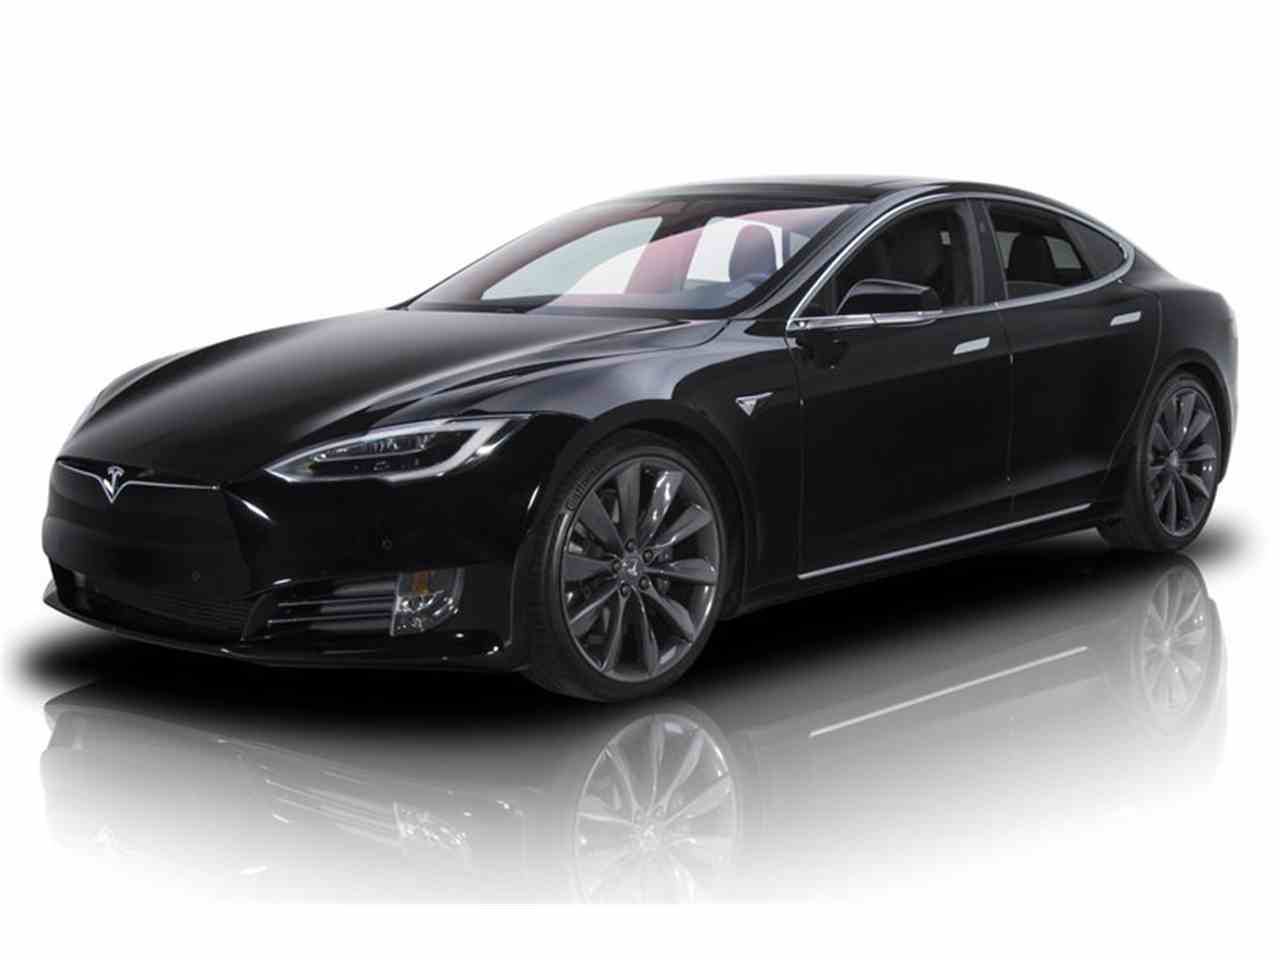 2017 tesla model s for sale cc 1046634. Black Bedroom Furniture Sets. Home Design Ideas